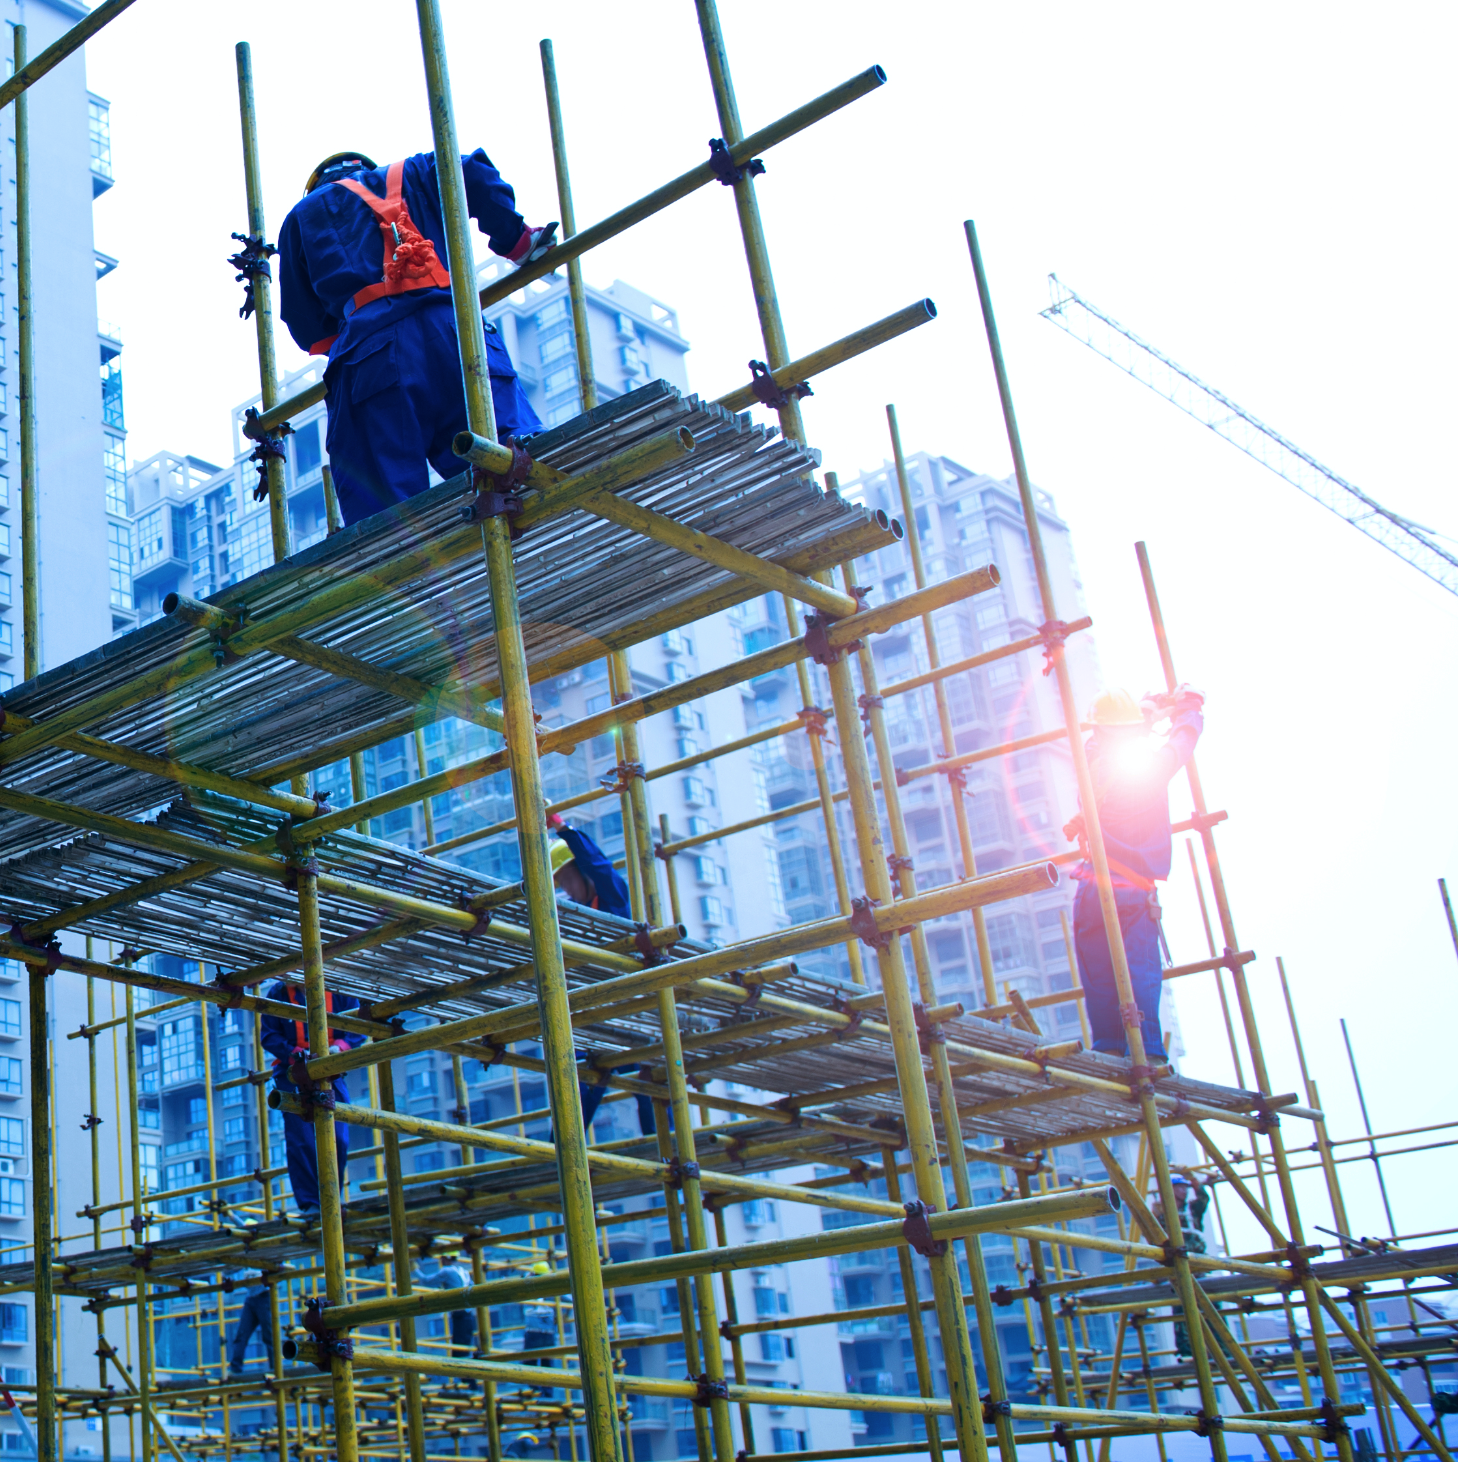 Scaffolders working high above the city streets need tool belt accessories they can trust.